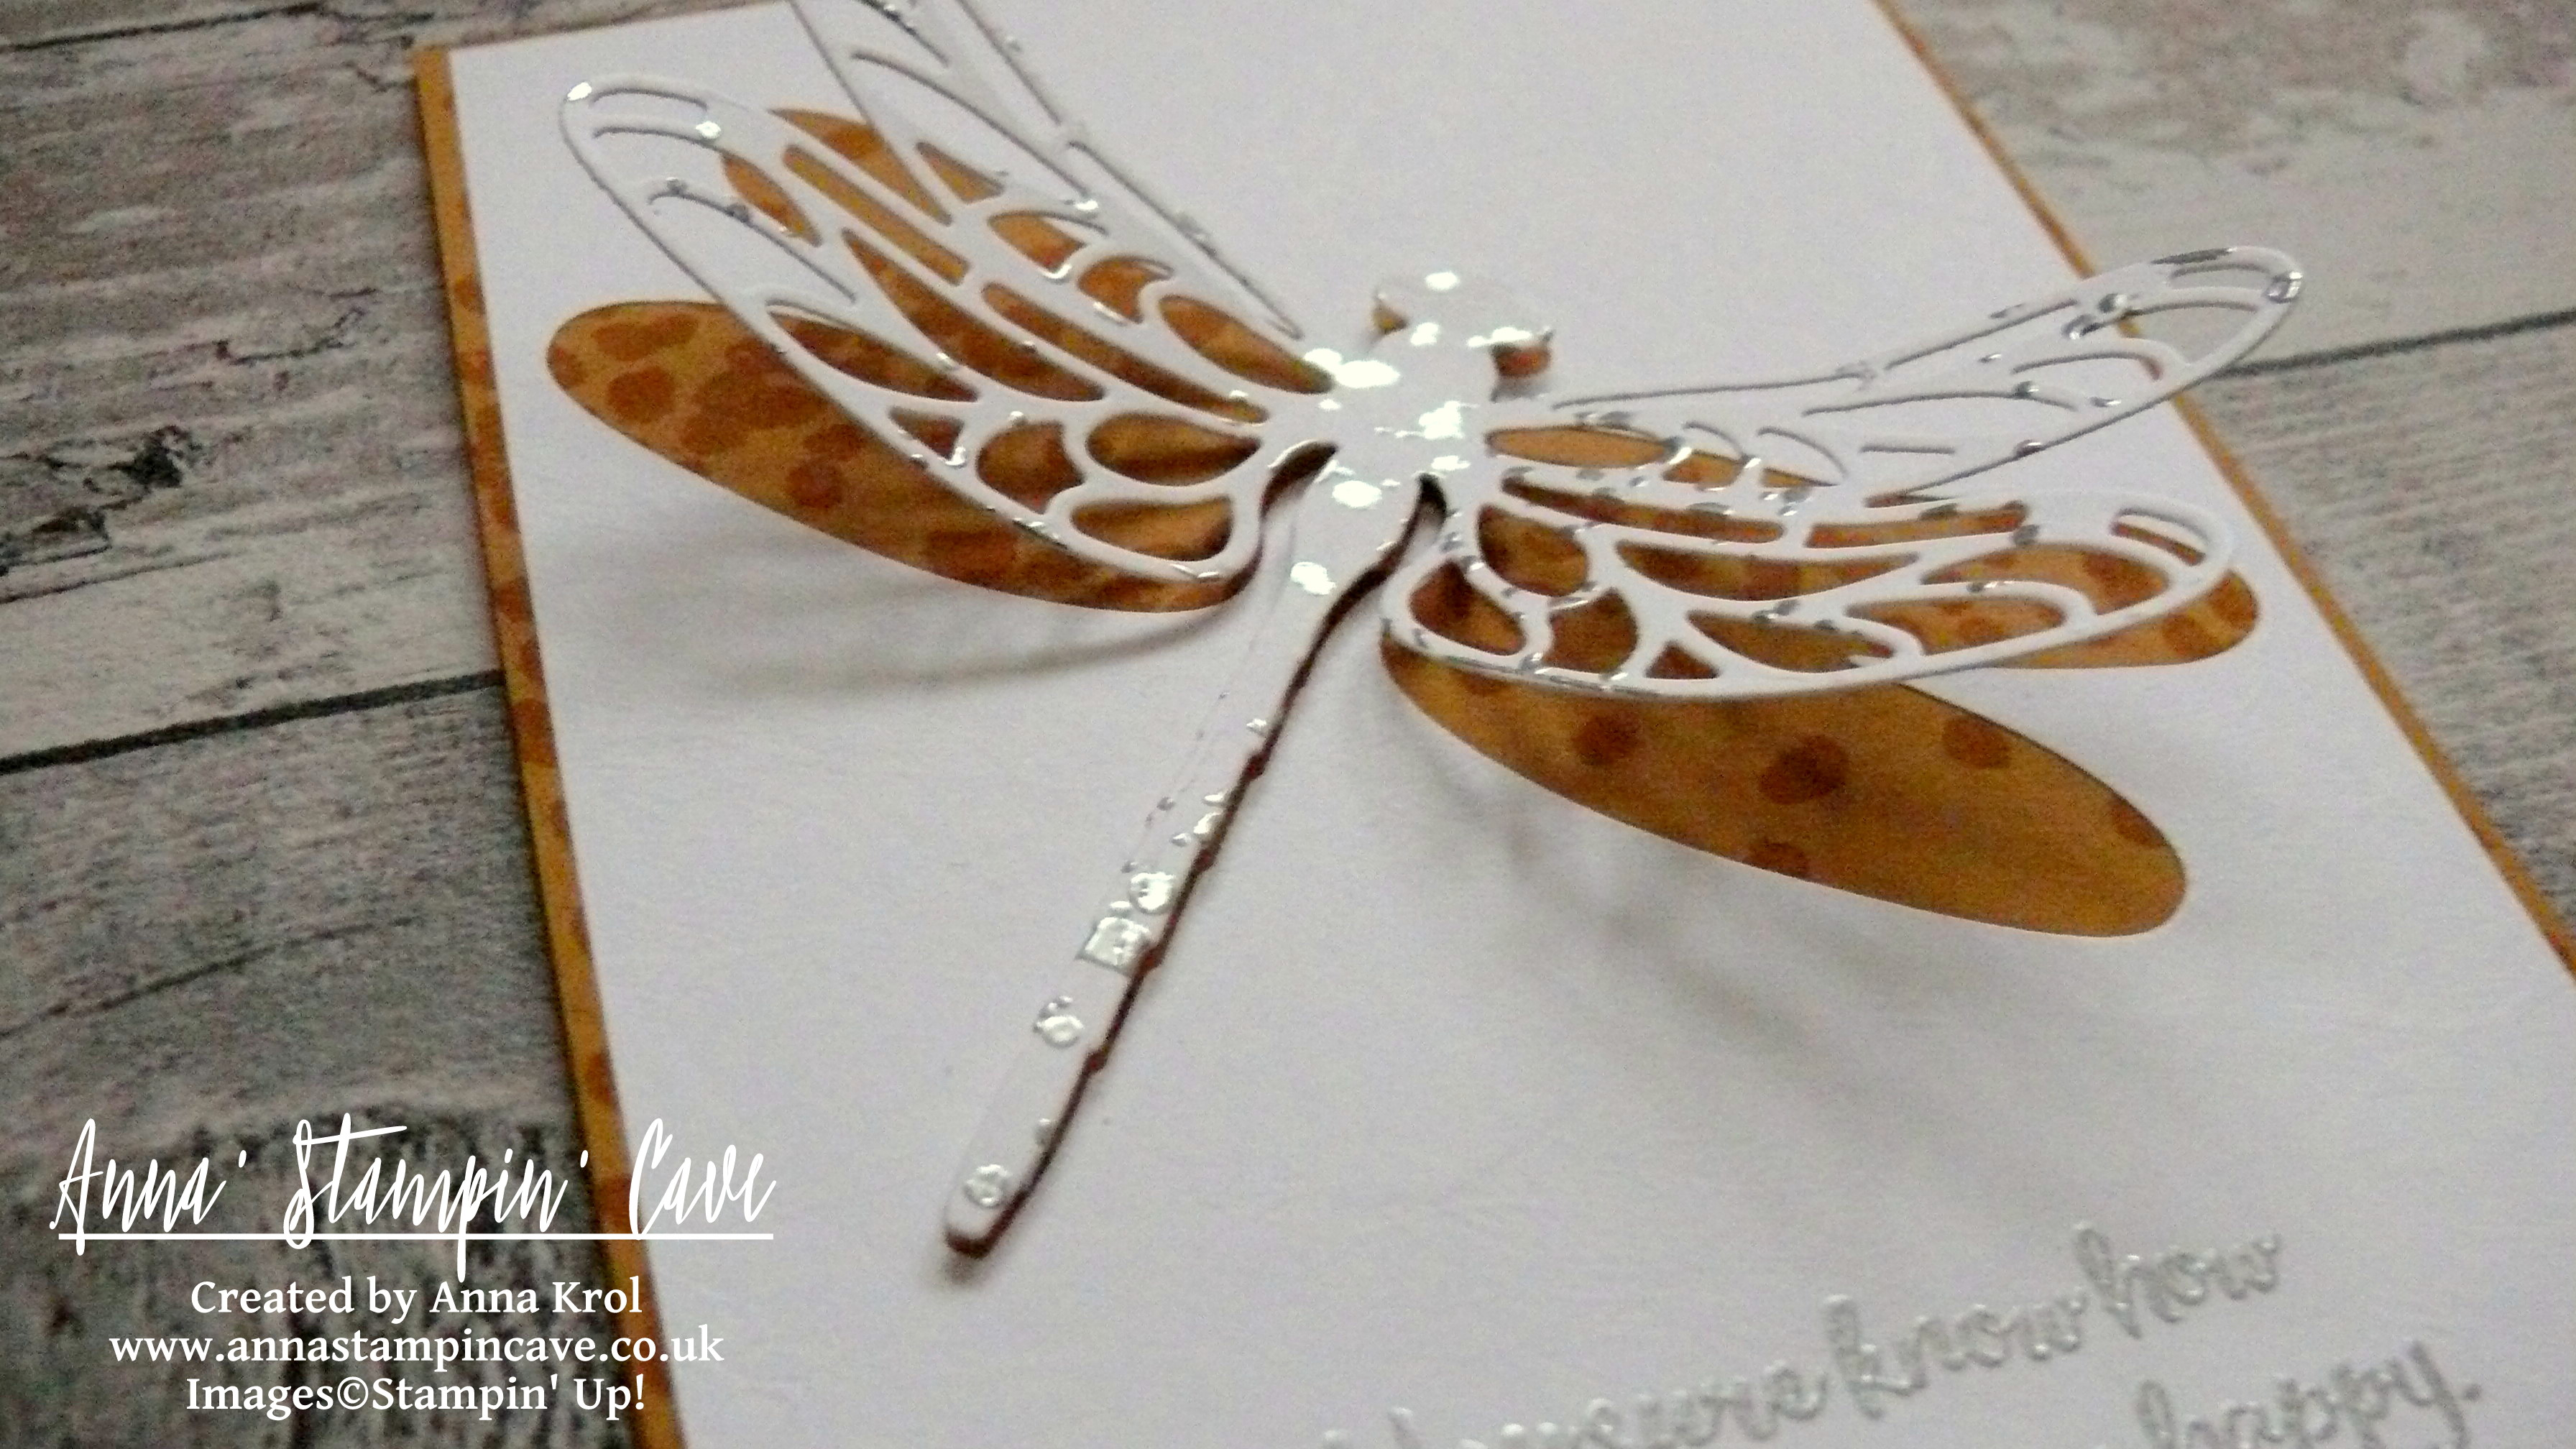 Anna' Stampin' Cave Dragonfly Dreams Bundle Clean and Simple Card.JPG